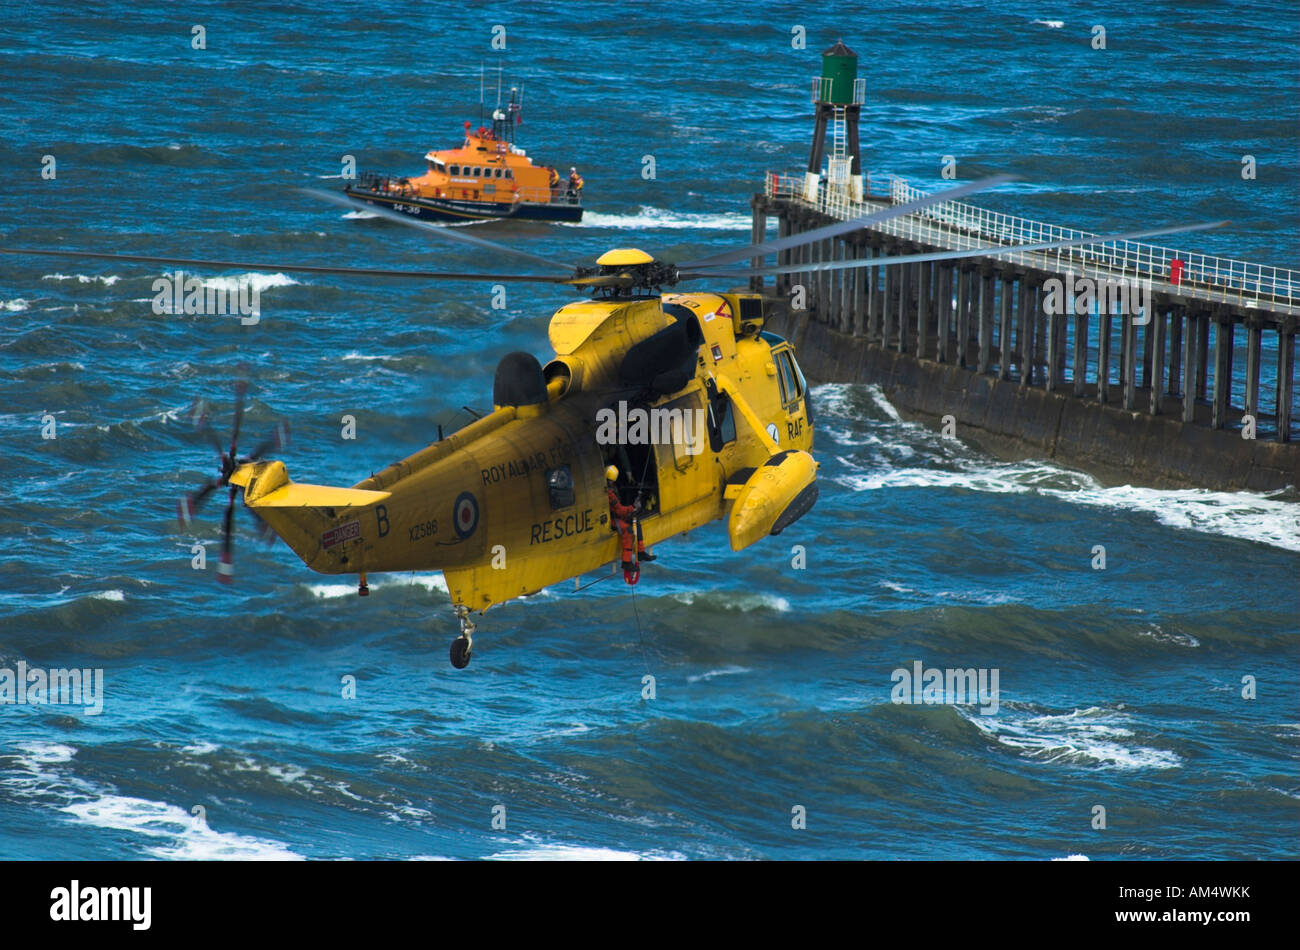 RAF Sea King Helicopter On a Training Exercise in Whitby North Yorkshire England - Stock Image